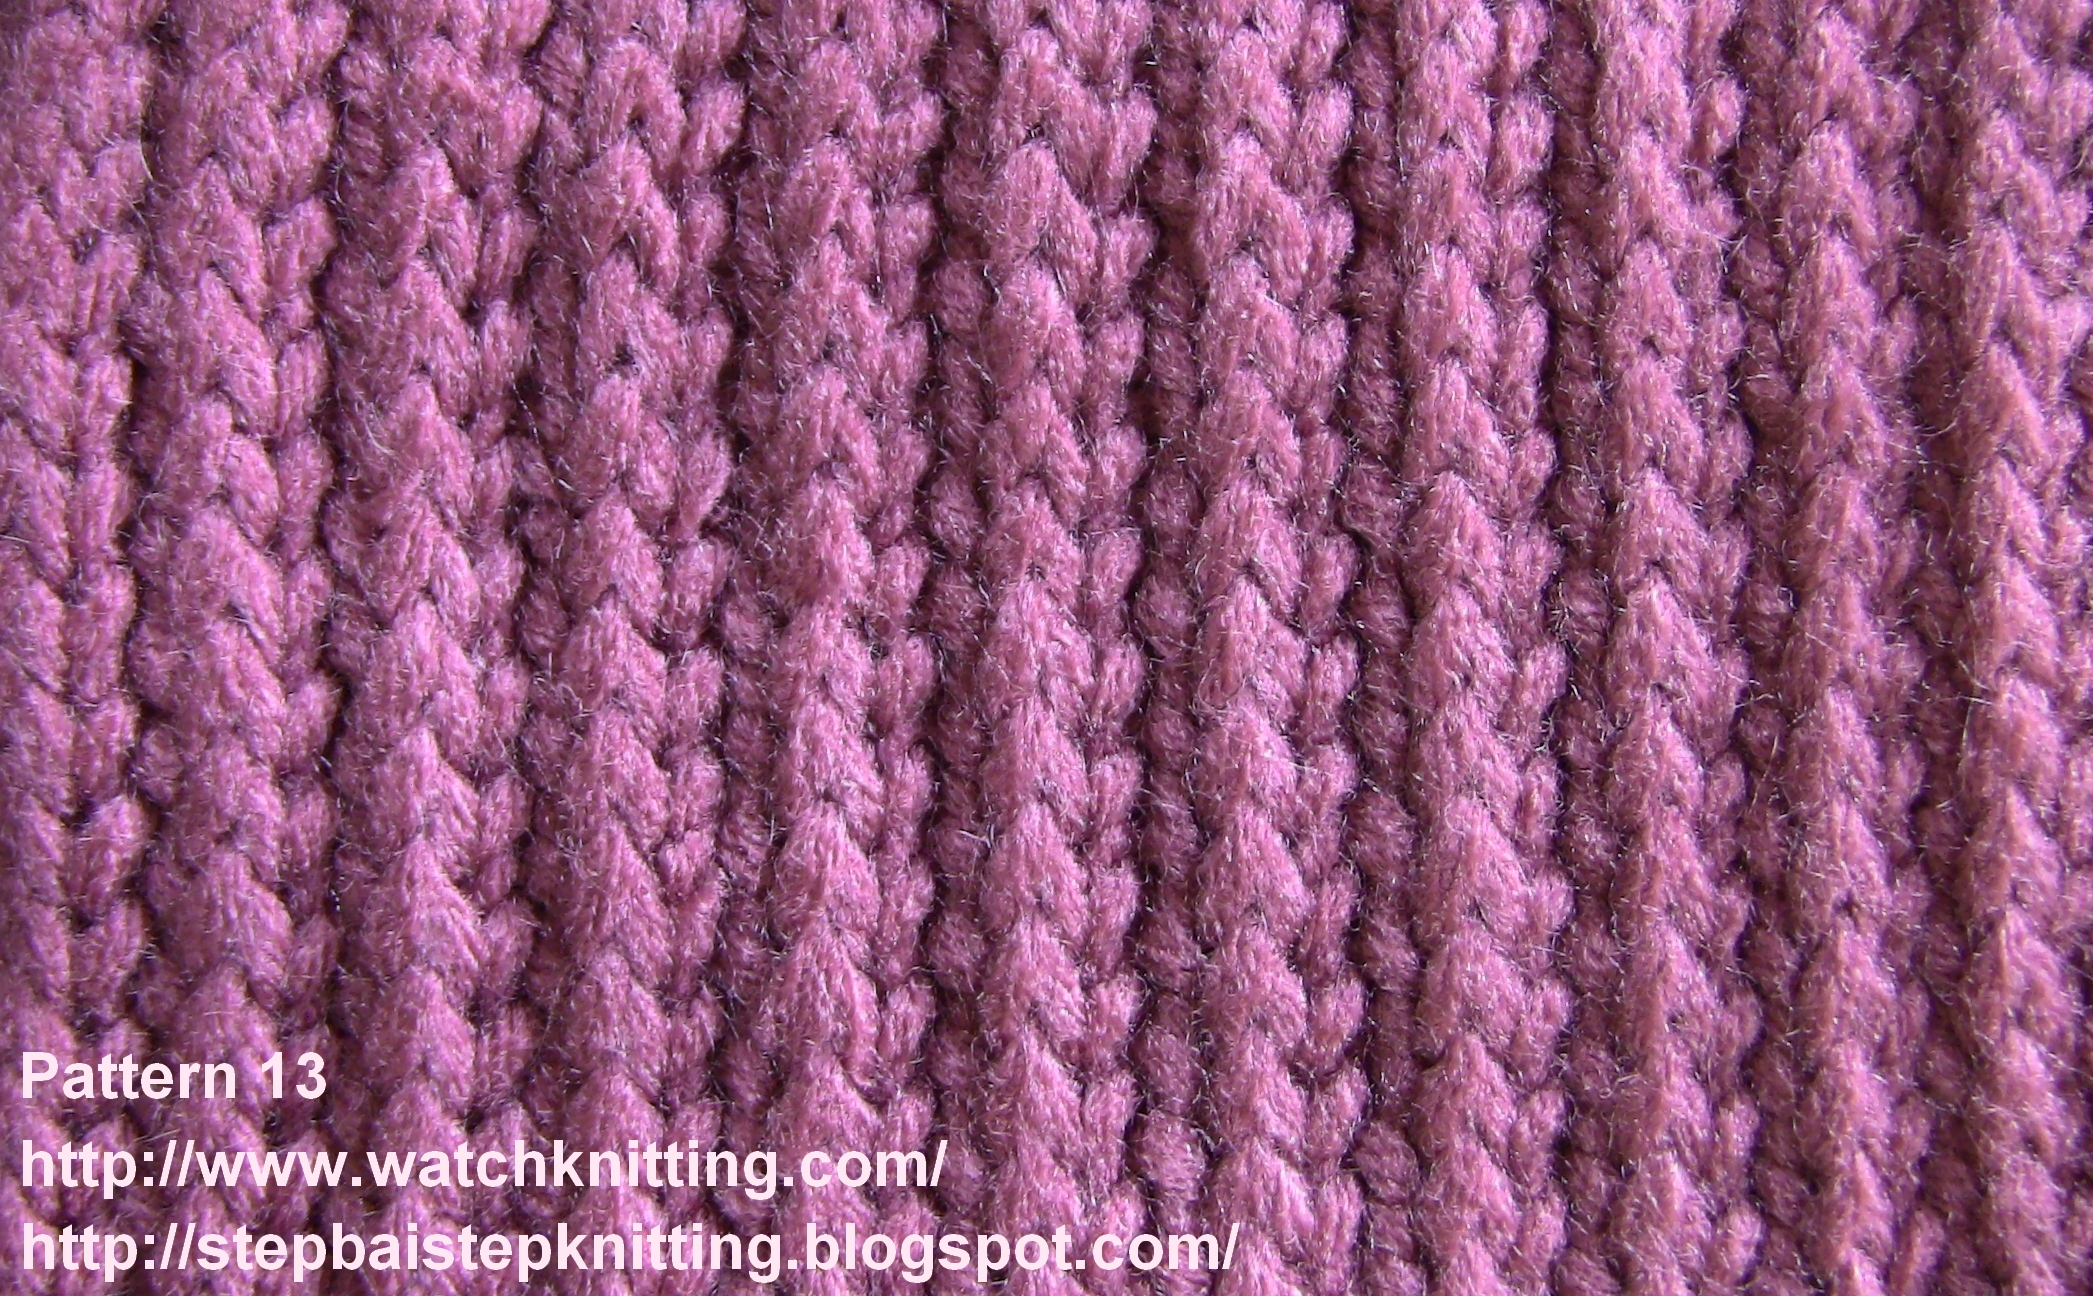 Easy Knitting : easy knitting pattern - Knitting for charity?